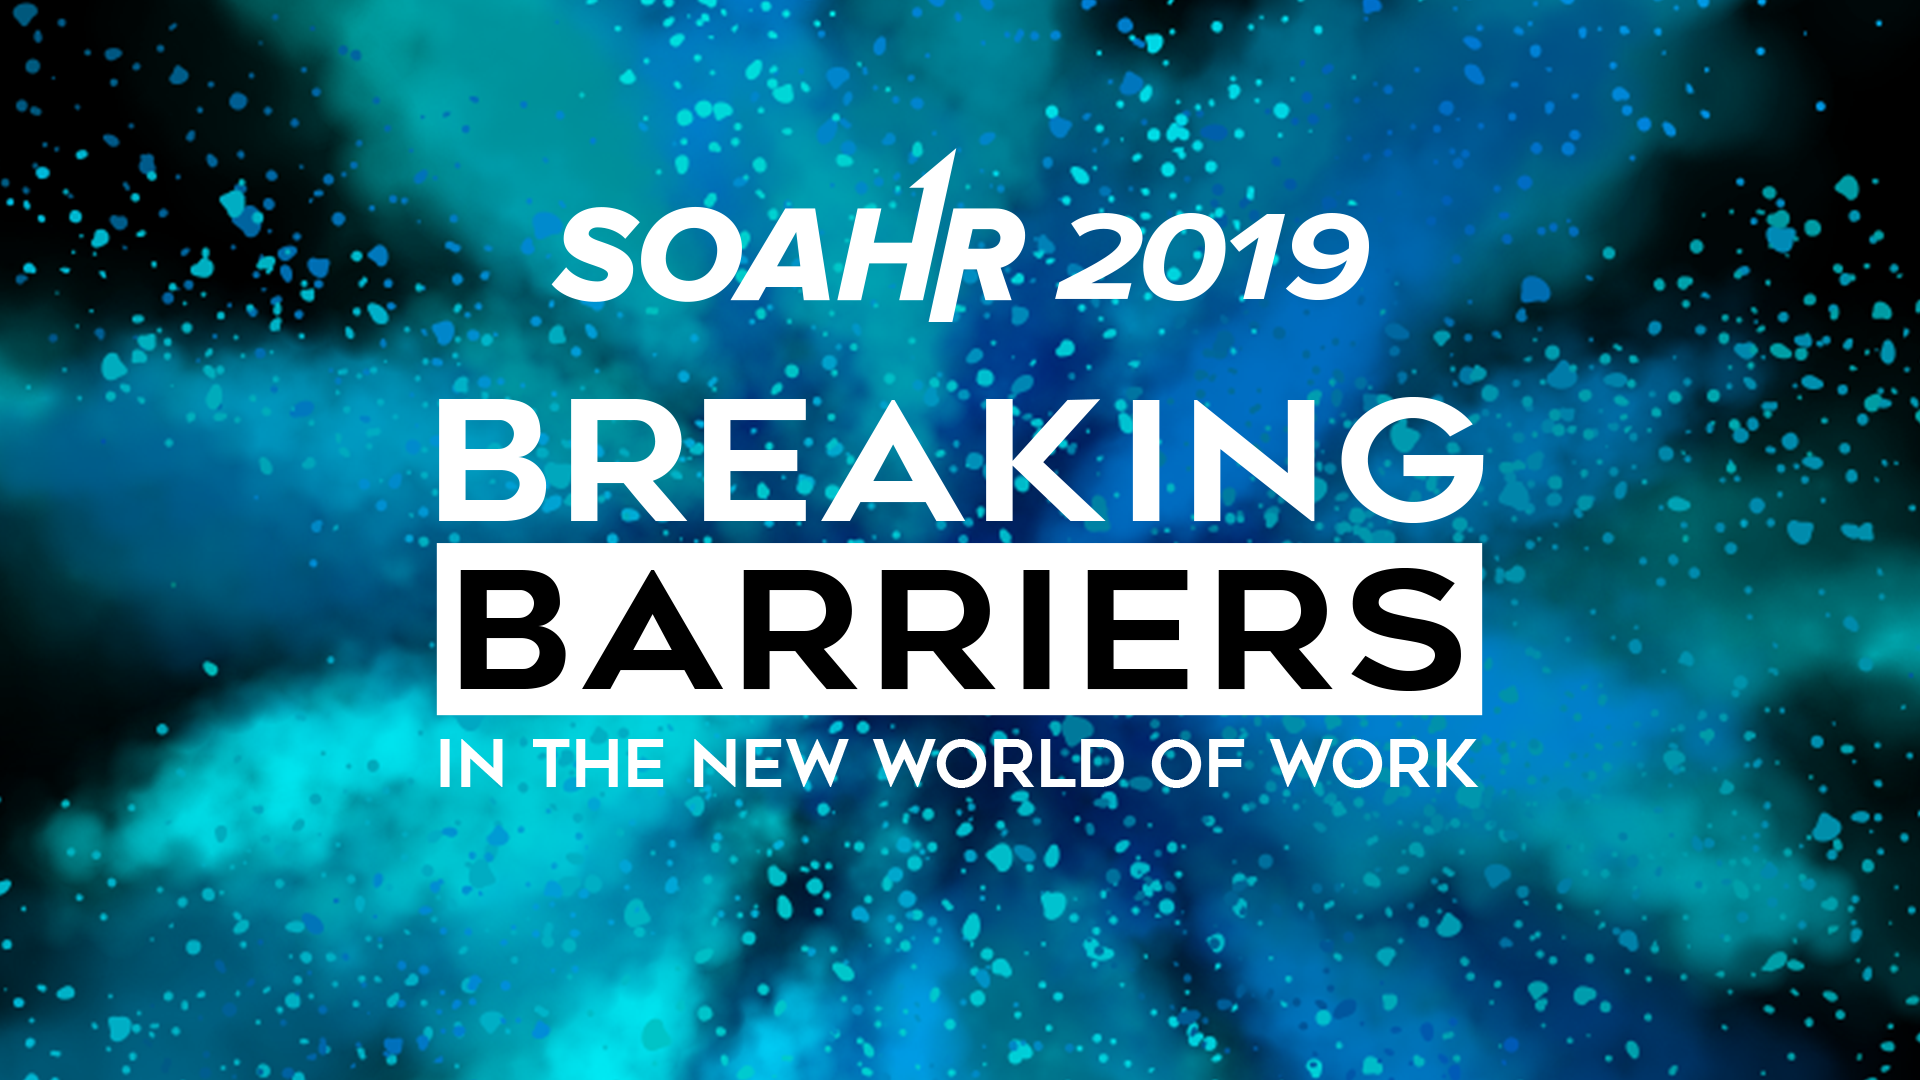 SOAHR 2019 Know Before You Go